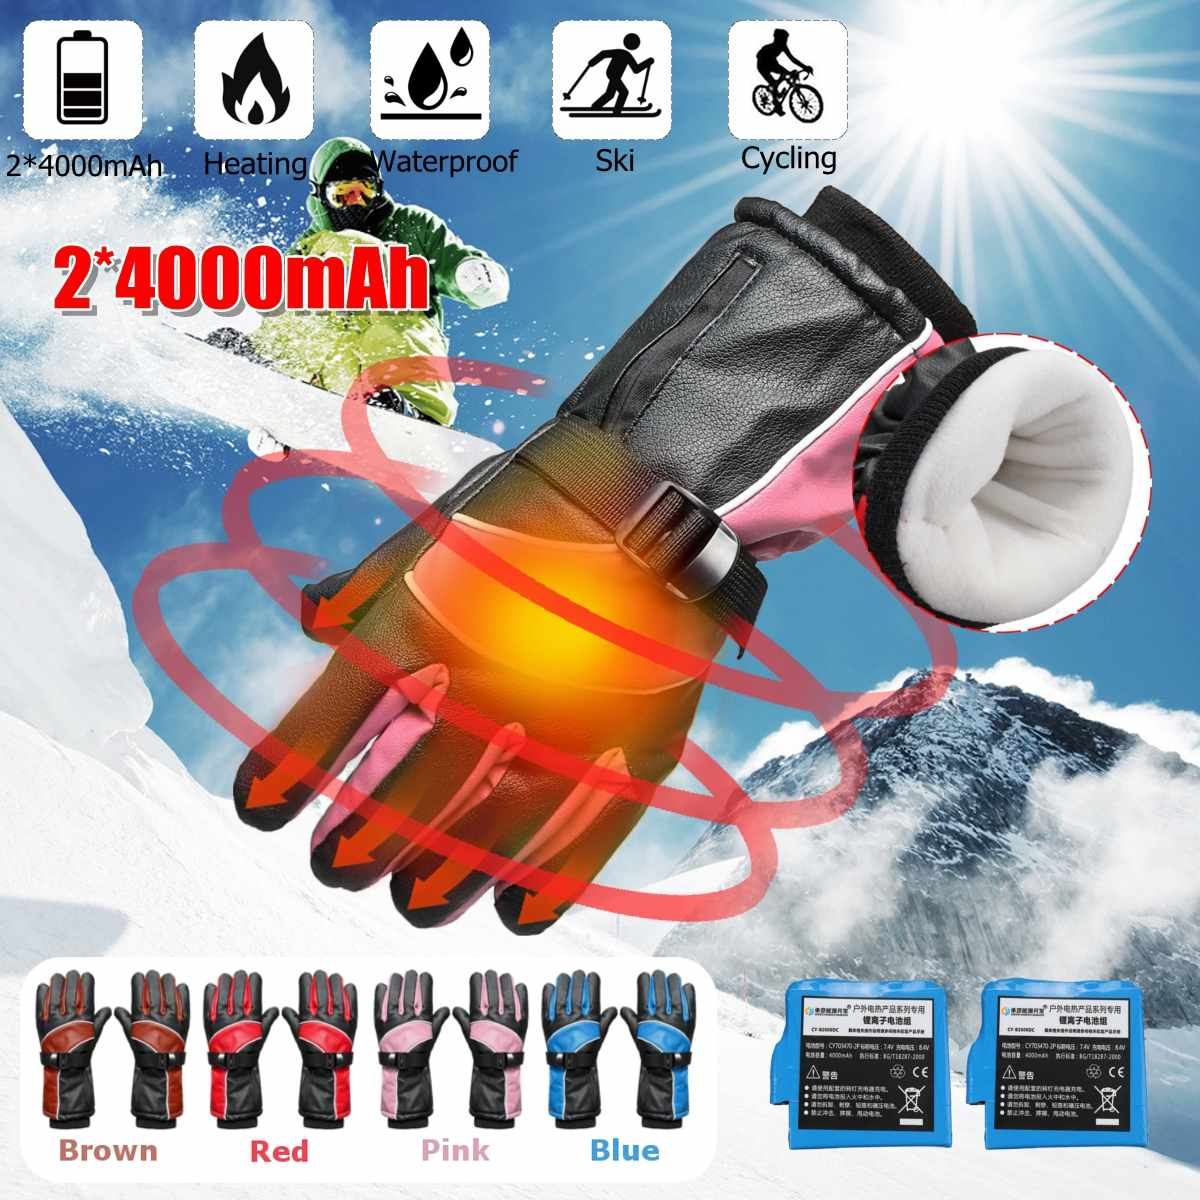 4000mah Rechargeable Waterproof Motorcycle Electric Heated Gloves Skiing Winter Hands Warmer Outdoor Safety Heating Glove